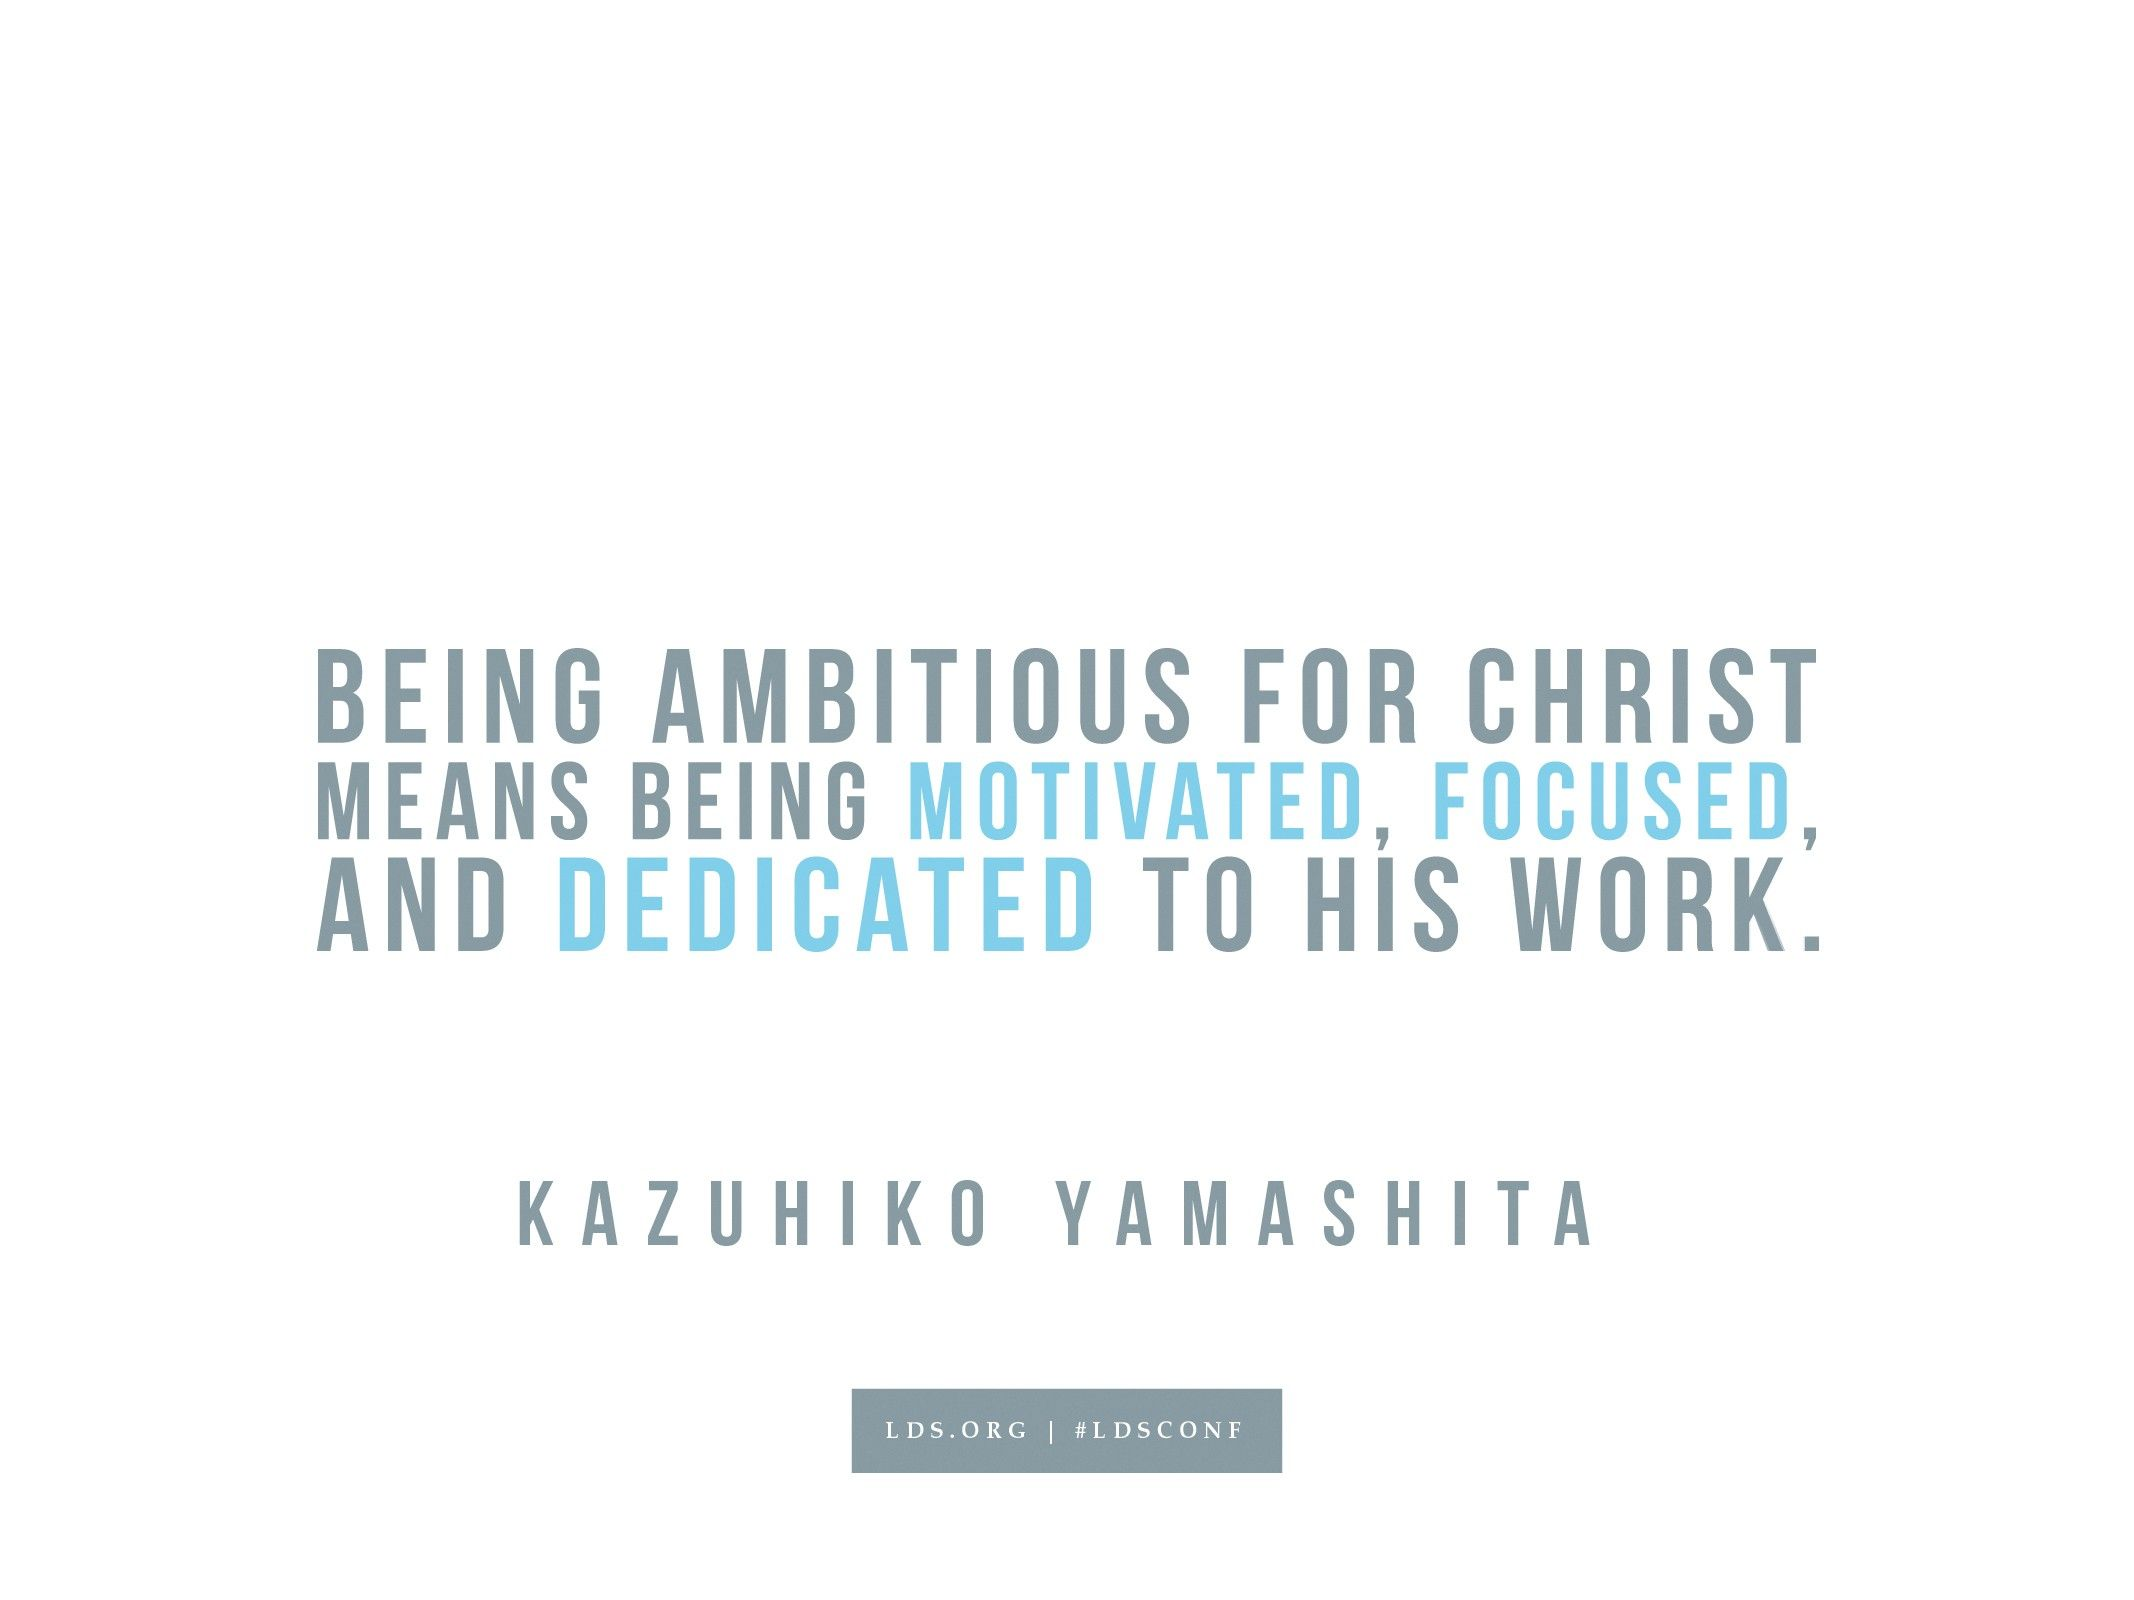 """""""Being ambitious for Christ means being motivated, focused, and dedicated to His work.""""—Kazuhiko Yamashita, """"Be Ambitious for Christ"""""""